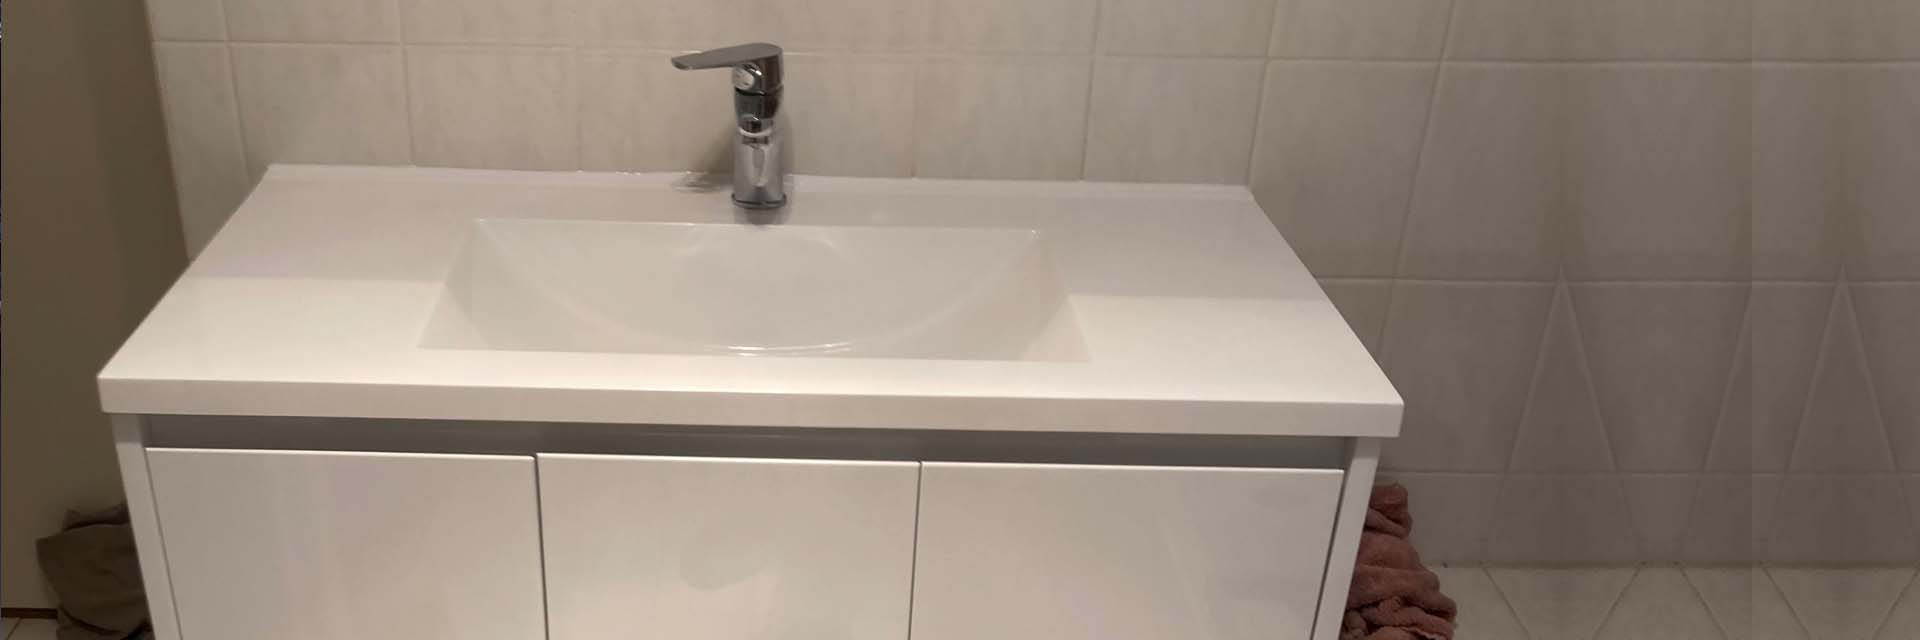 leaking-tap-canberra